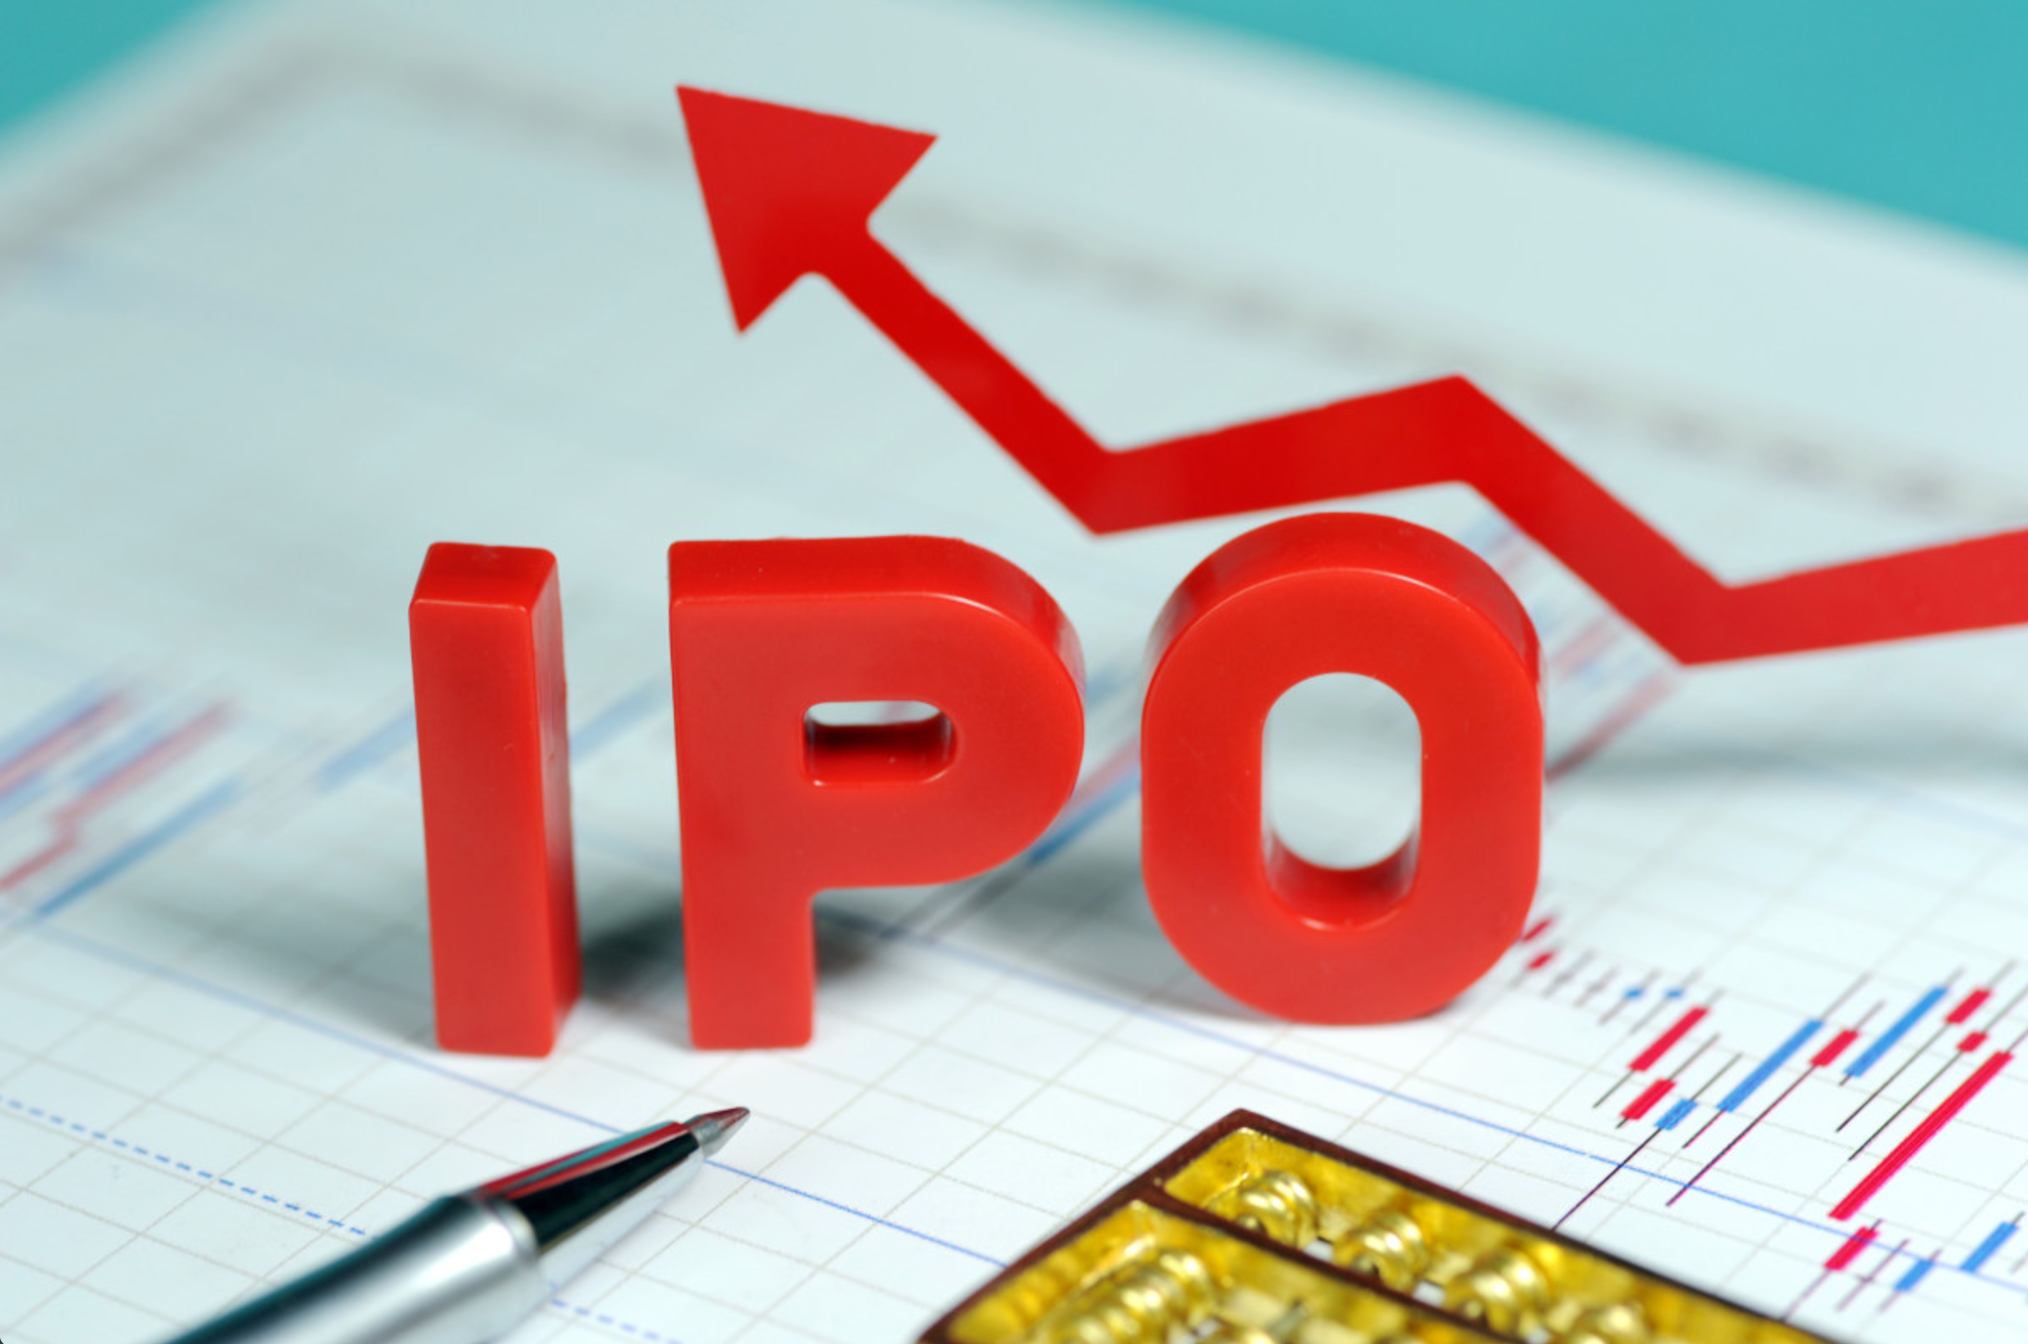 Ipo when find out